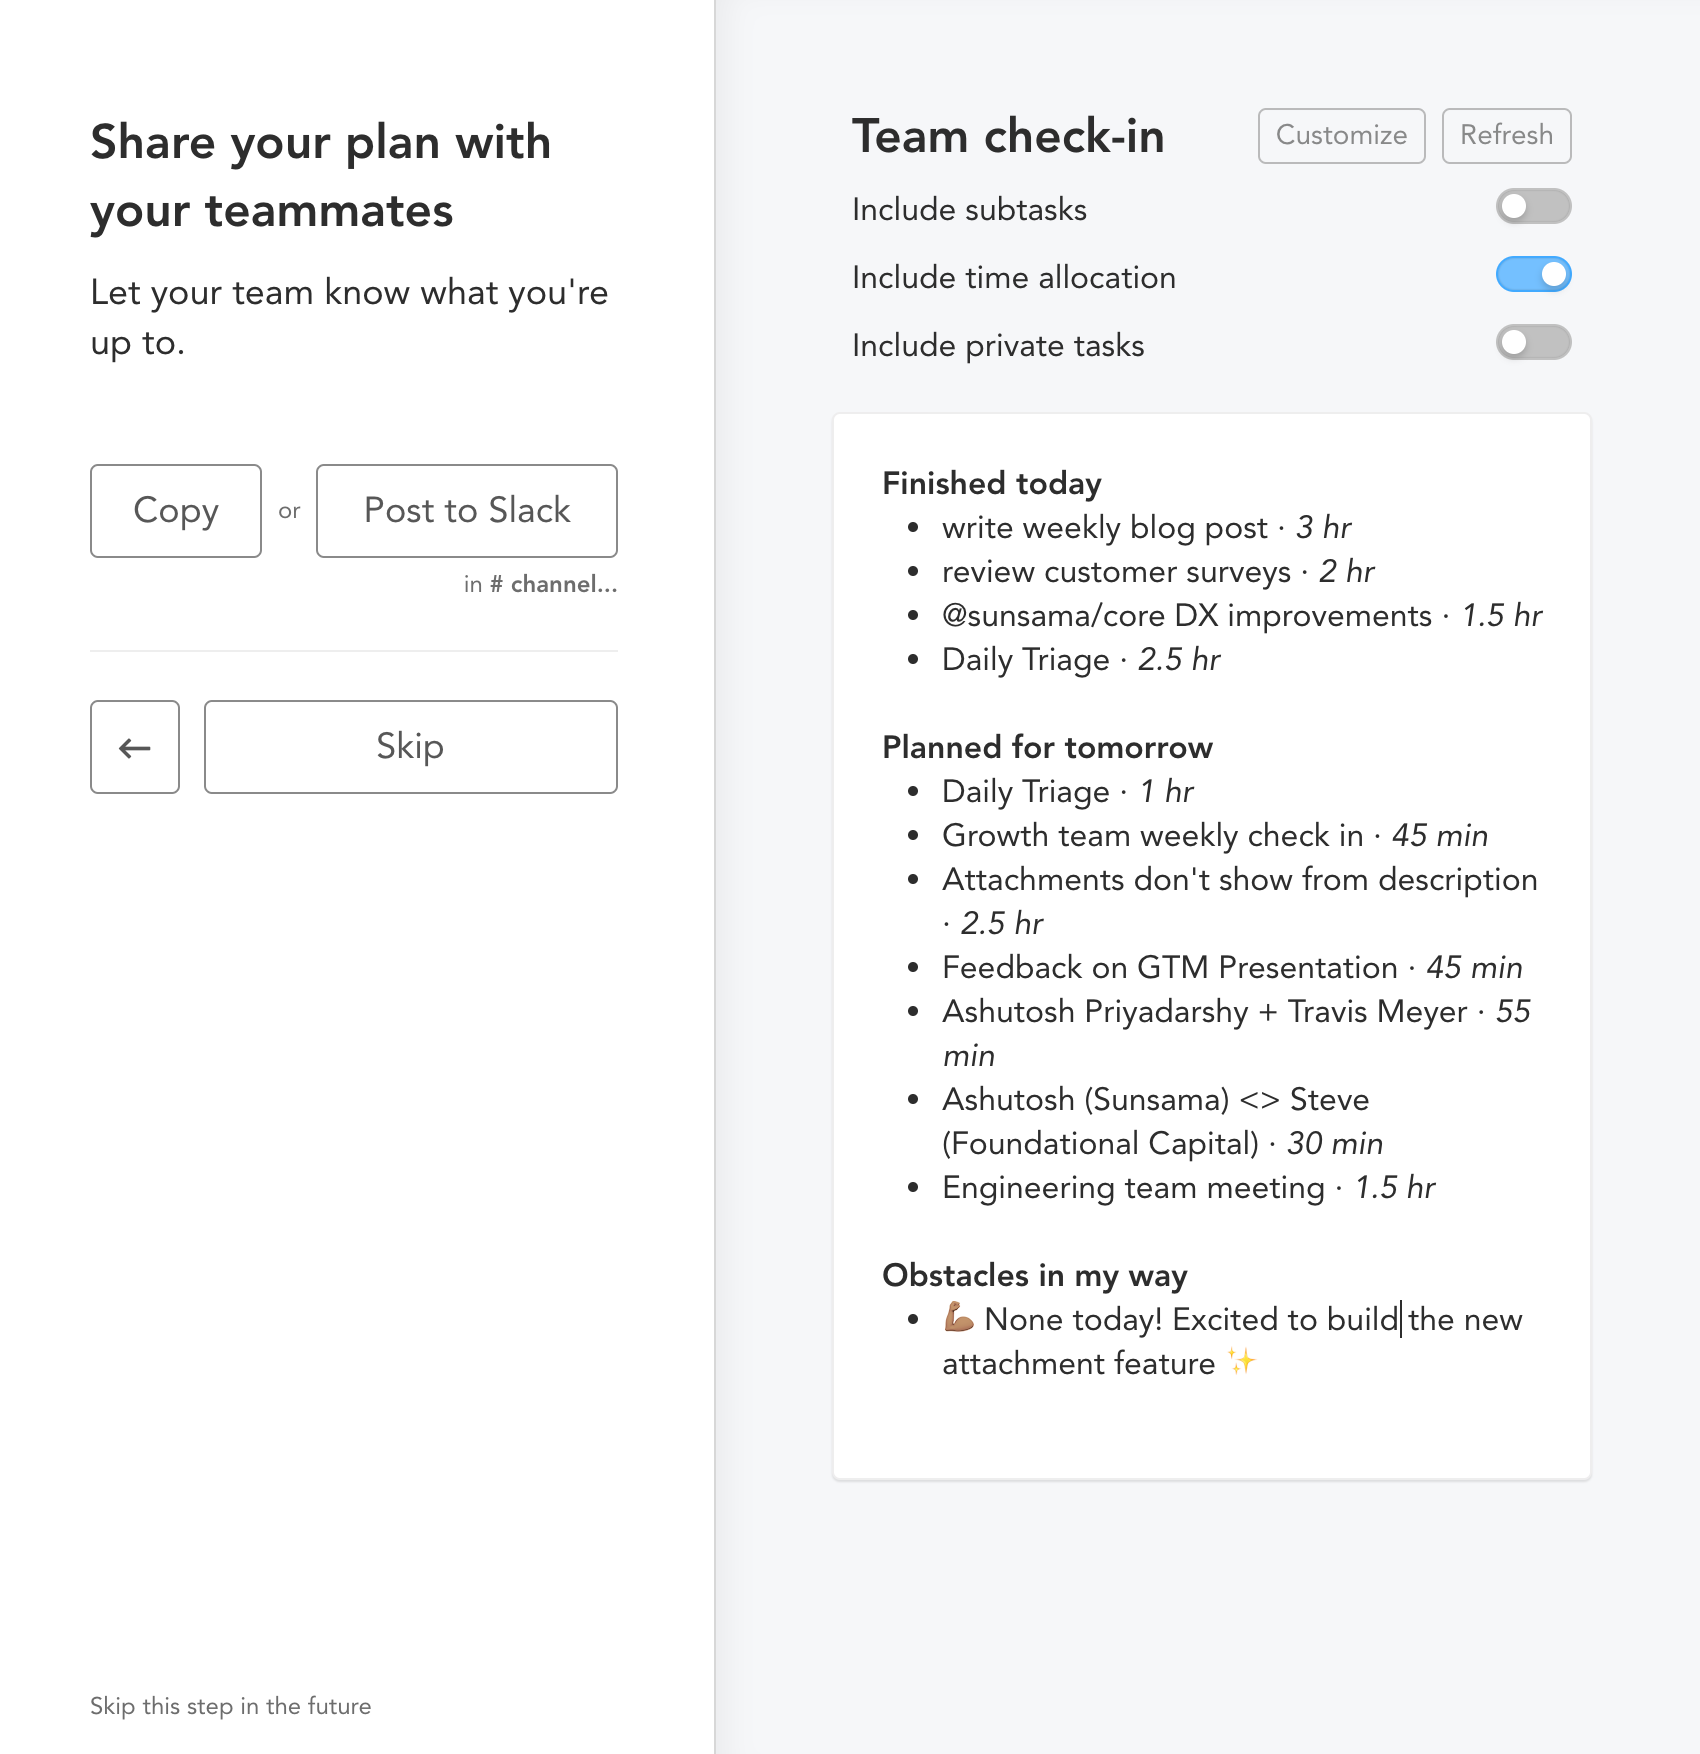 Share your plan on slack with teammates